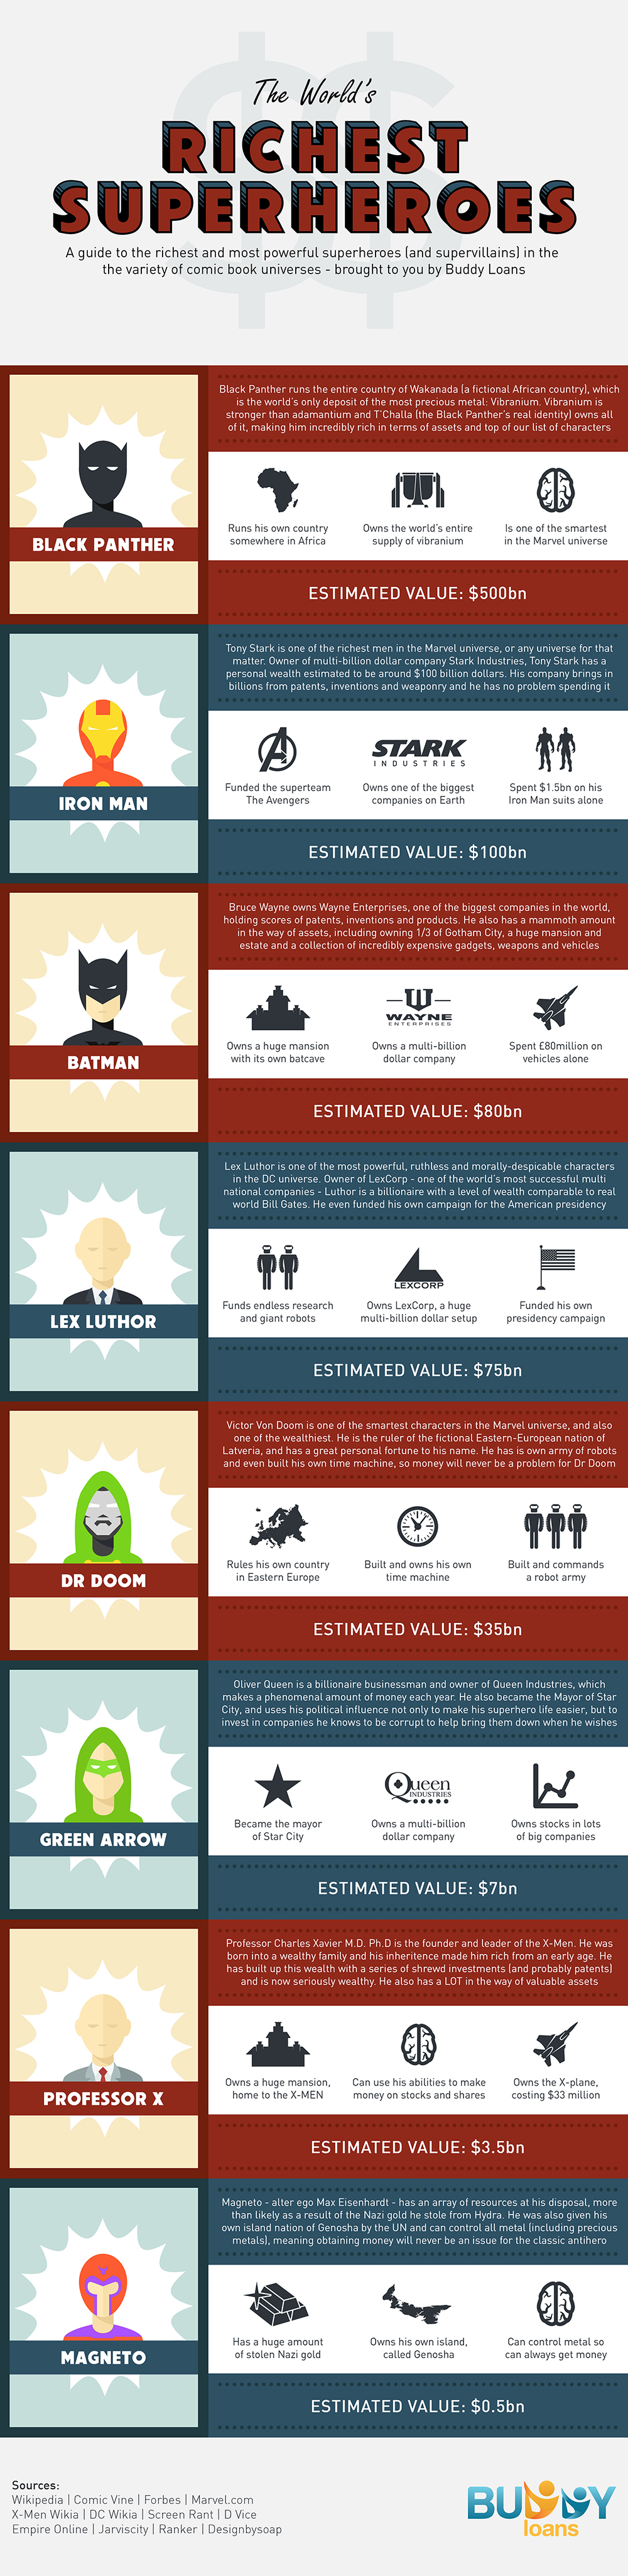 worlds richest superheroes